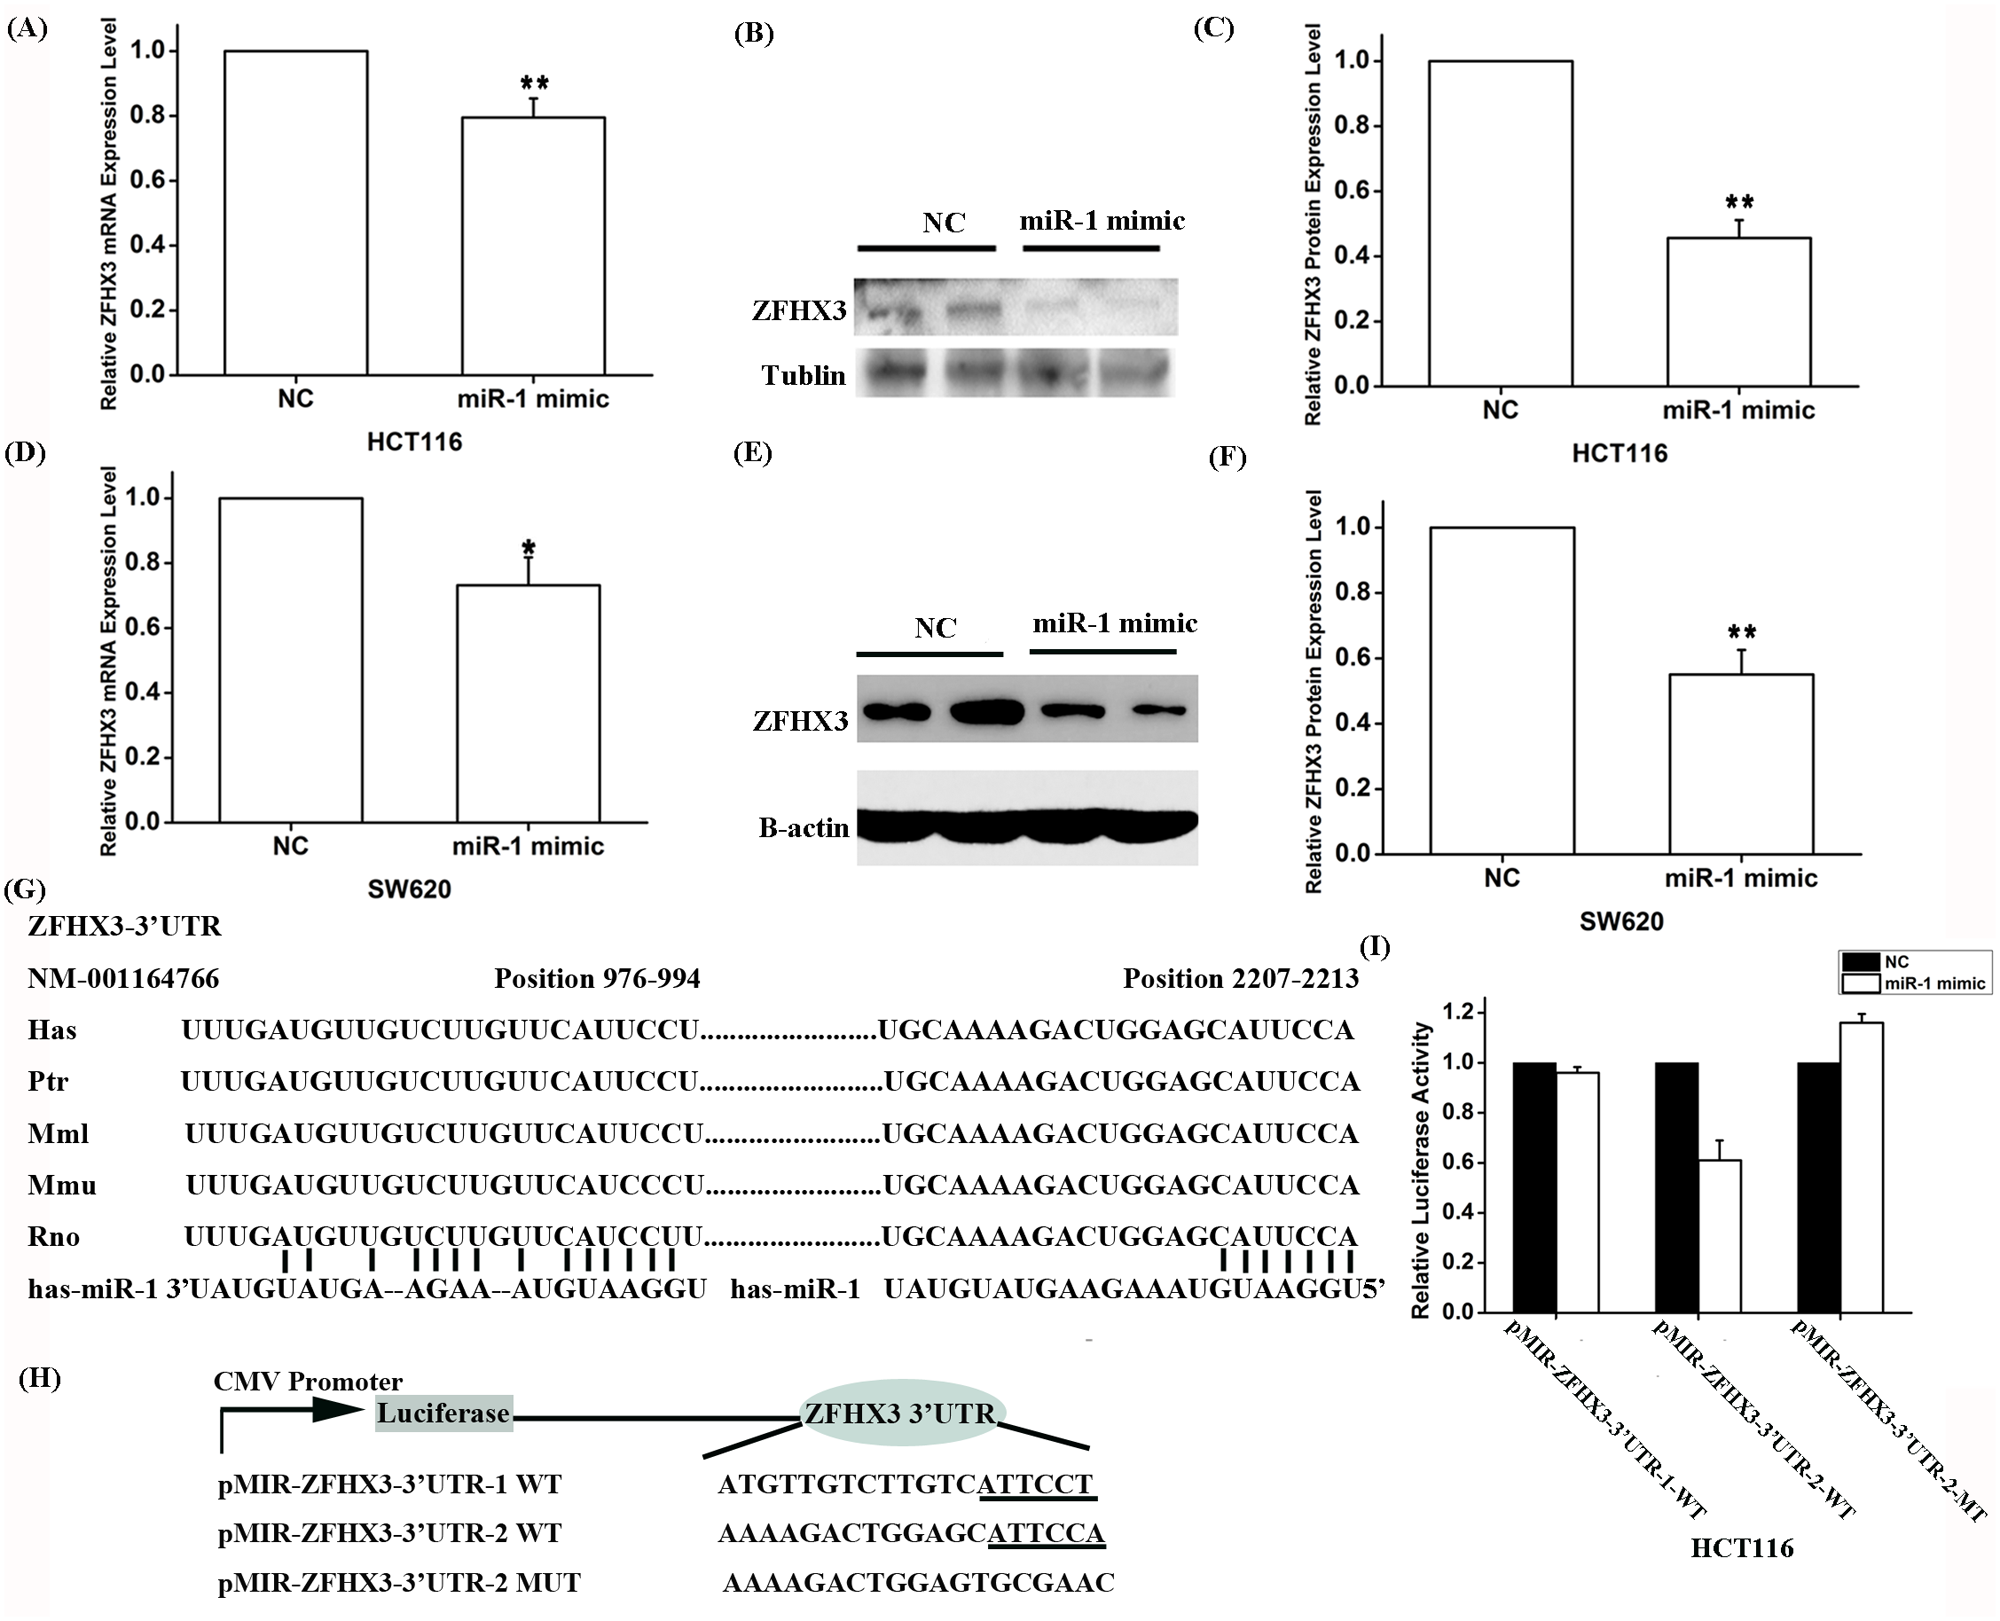 Expression of <i>ZFHX3</i> is negatively regulated by <i>miR-1</i>.